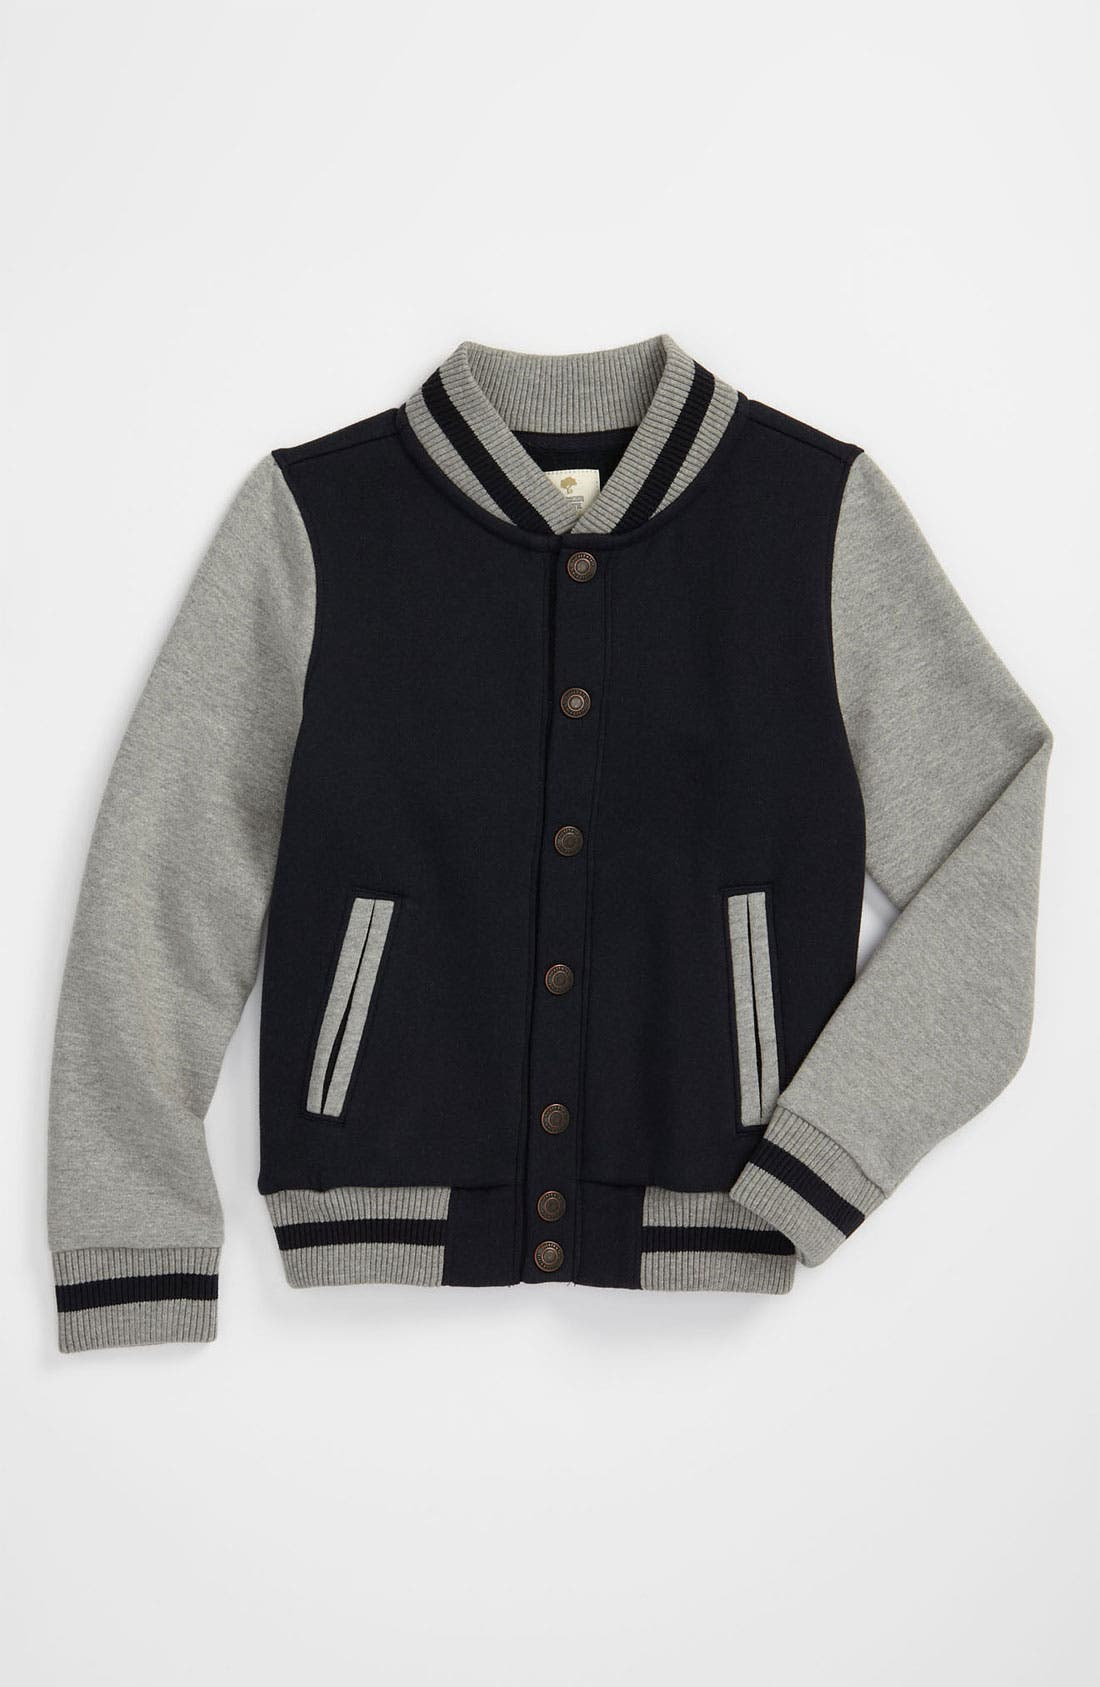 Main Image - Tucker + Tate 'Emmit' Varsity Jacket (Big Boys)